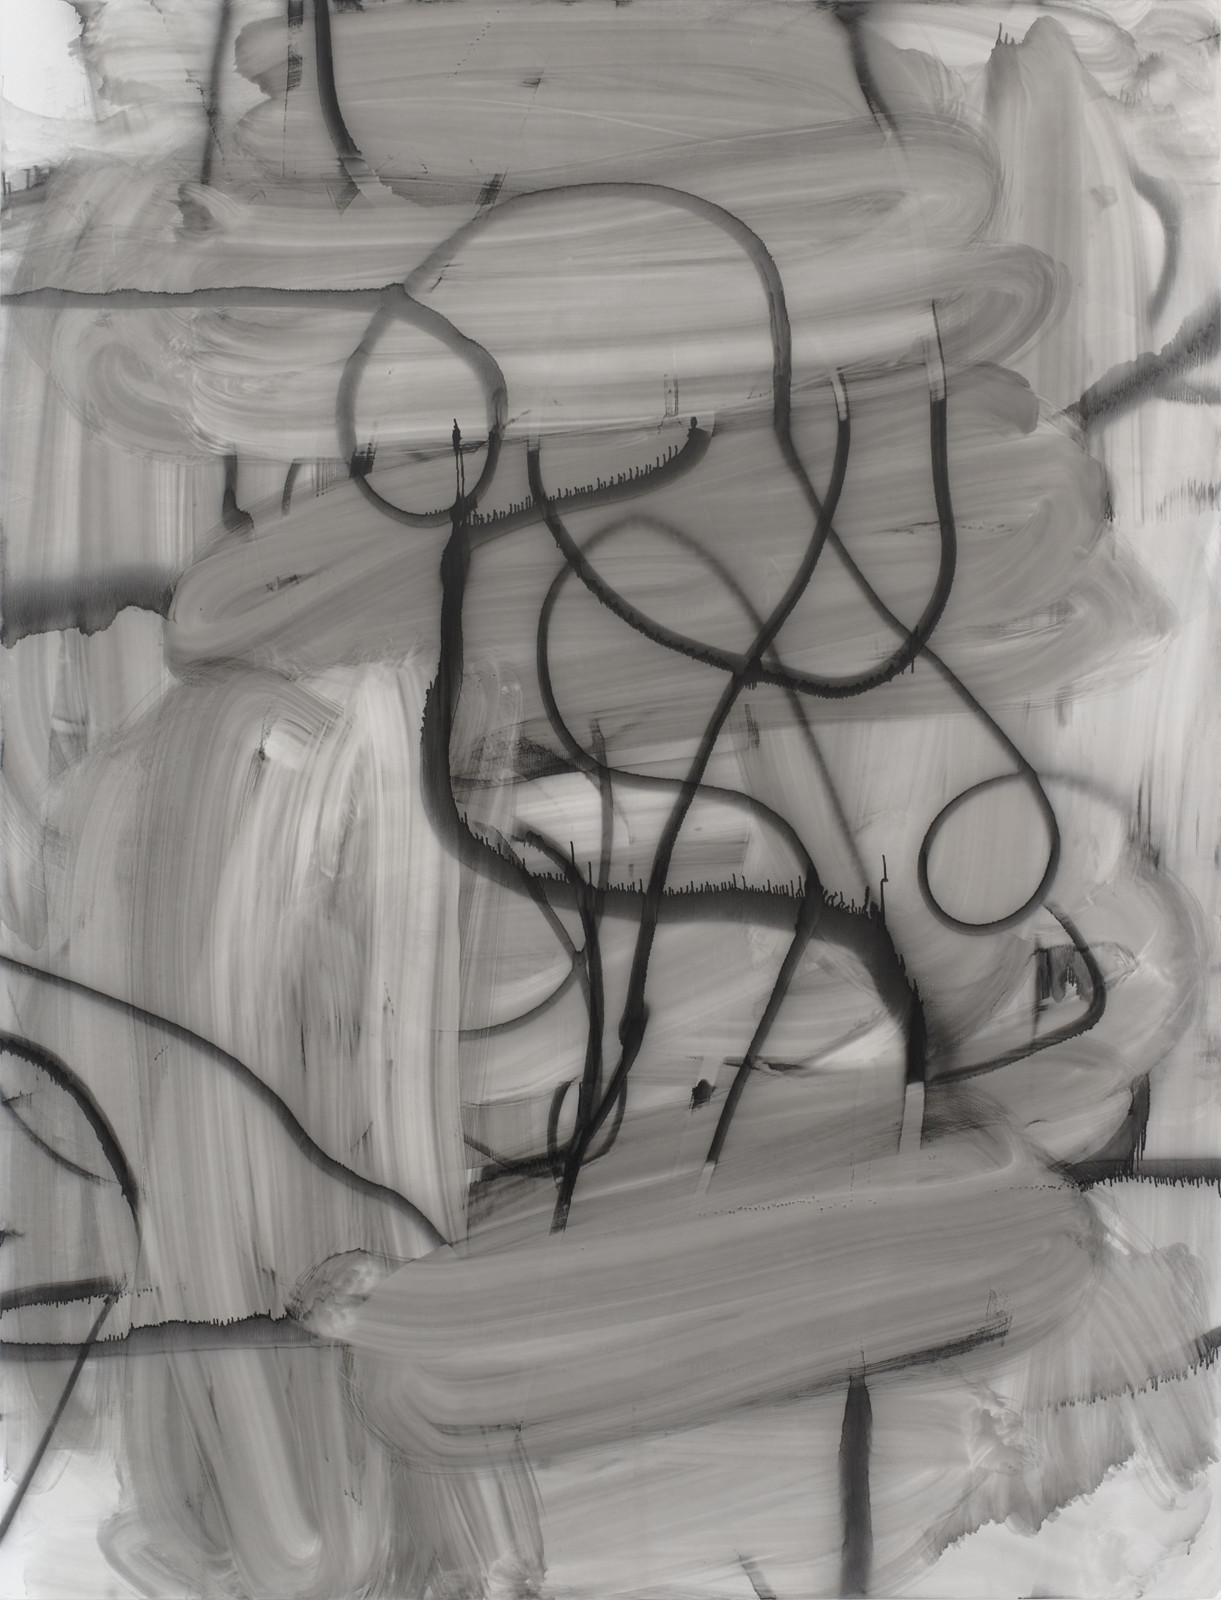 Gestural gray toned erasure marks throughout the background with looping spray paint black design in the foreground